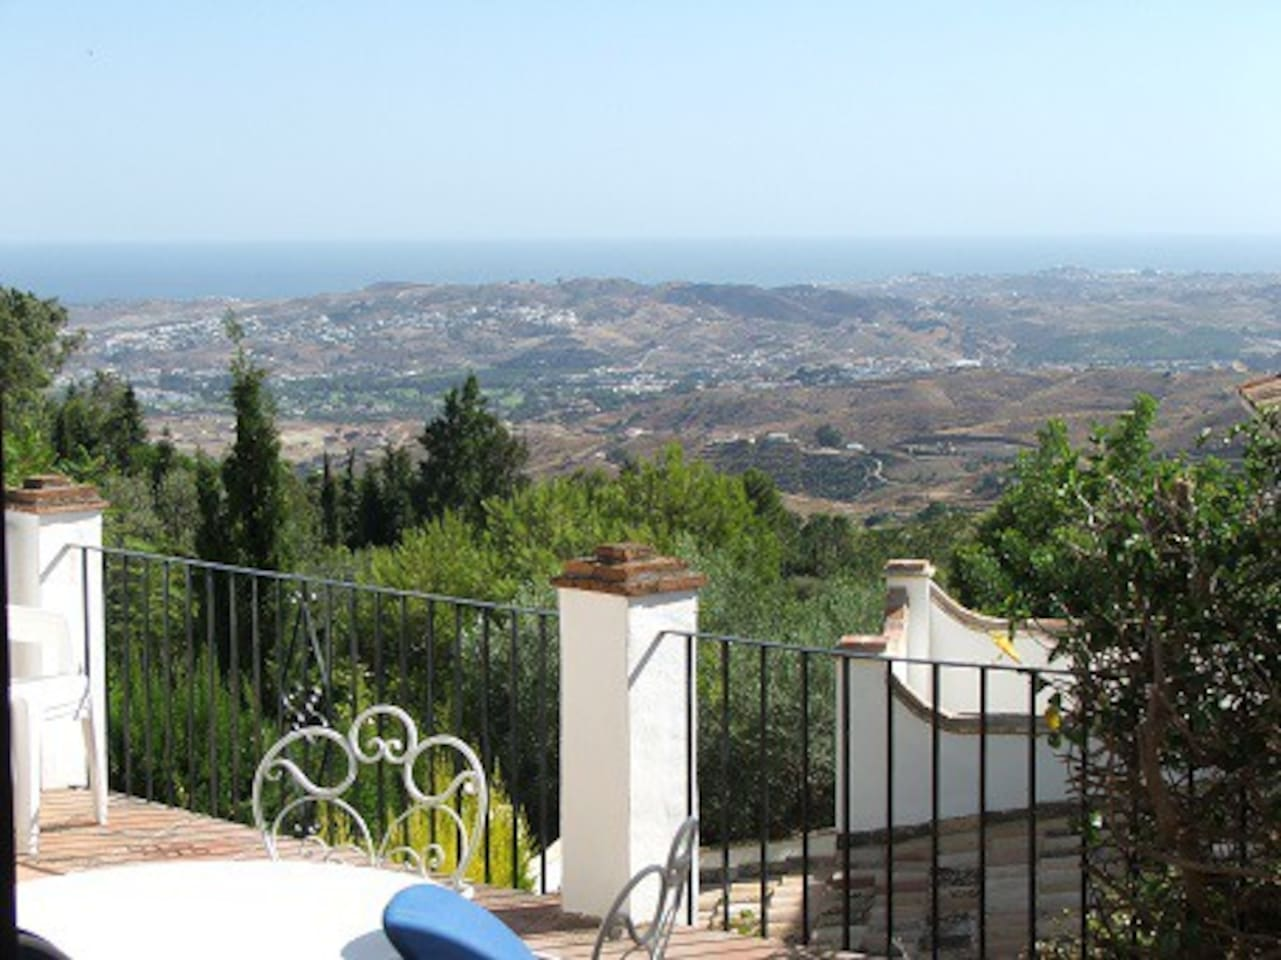 Views across the rolling hills to the sea